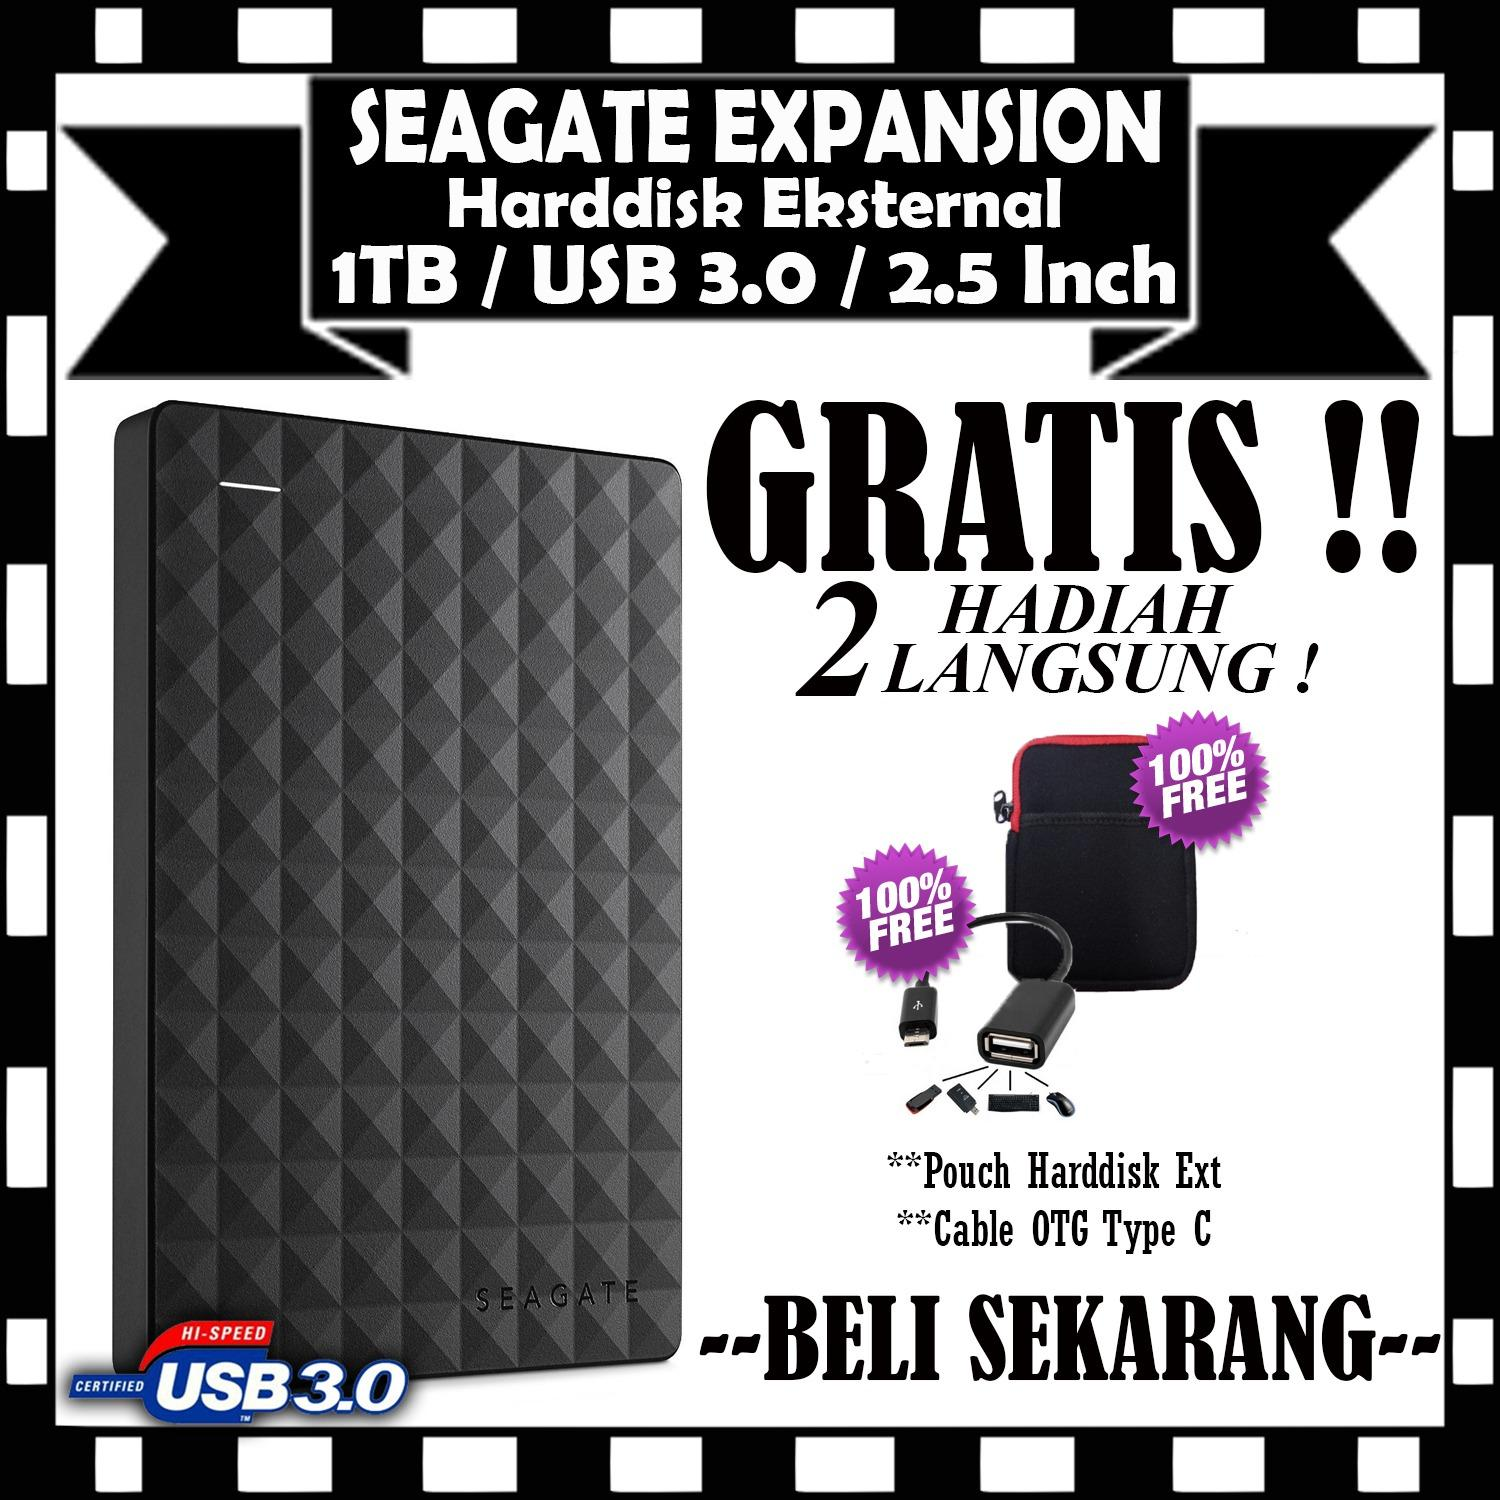 Seagate Expansion Harddisk Eksternal 1TB/2.5Inch/USB3.0 - Hitam - GRATIS Pouch HDD & Cable OTG Type C